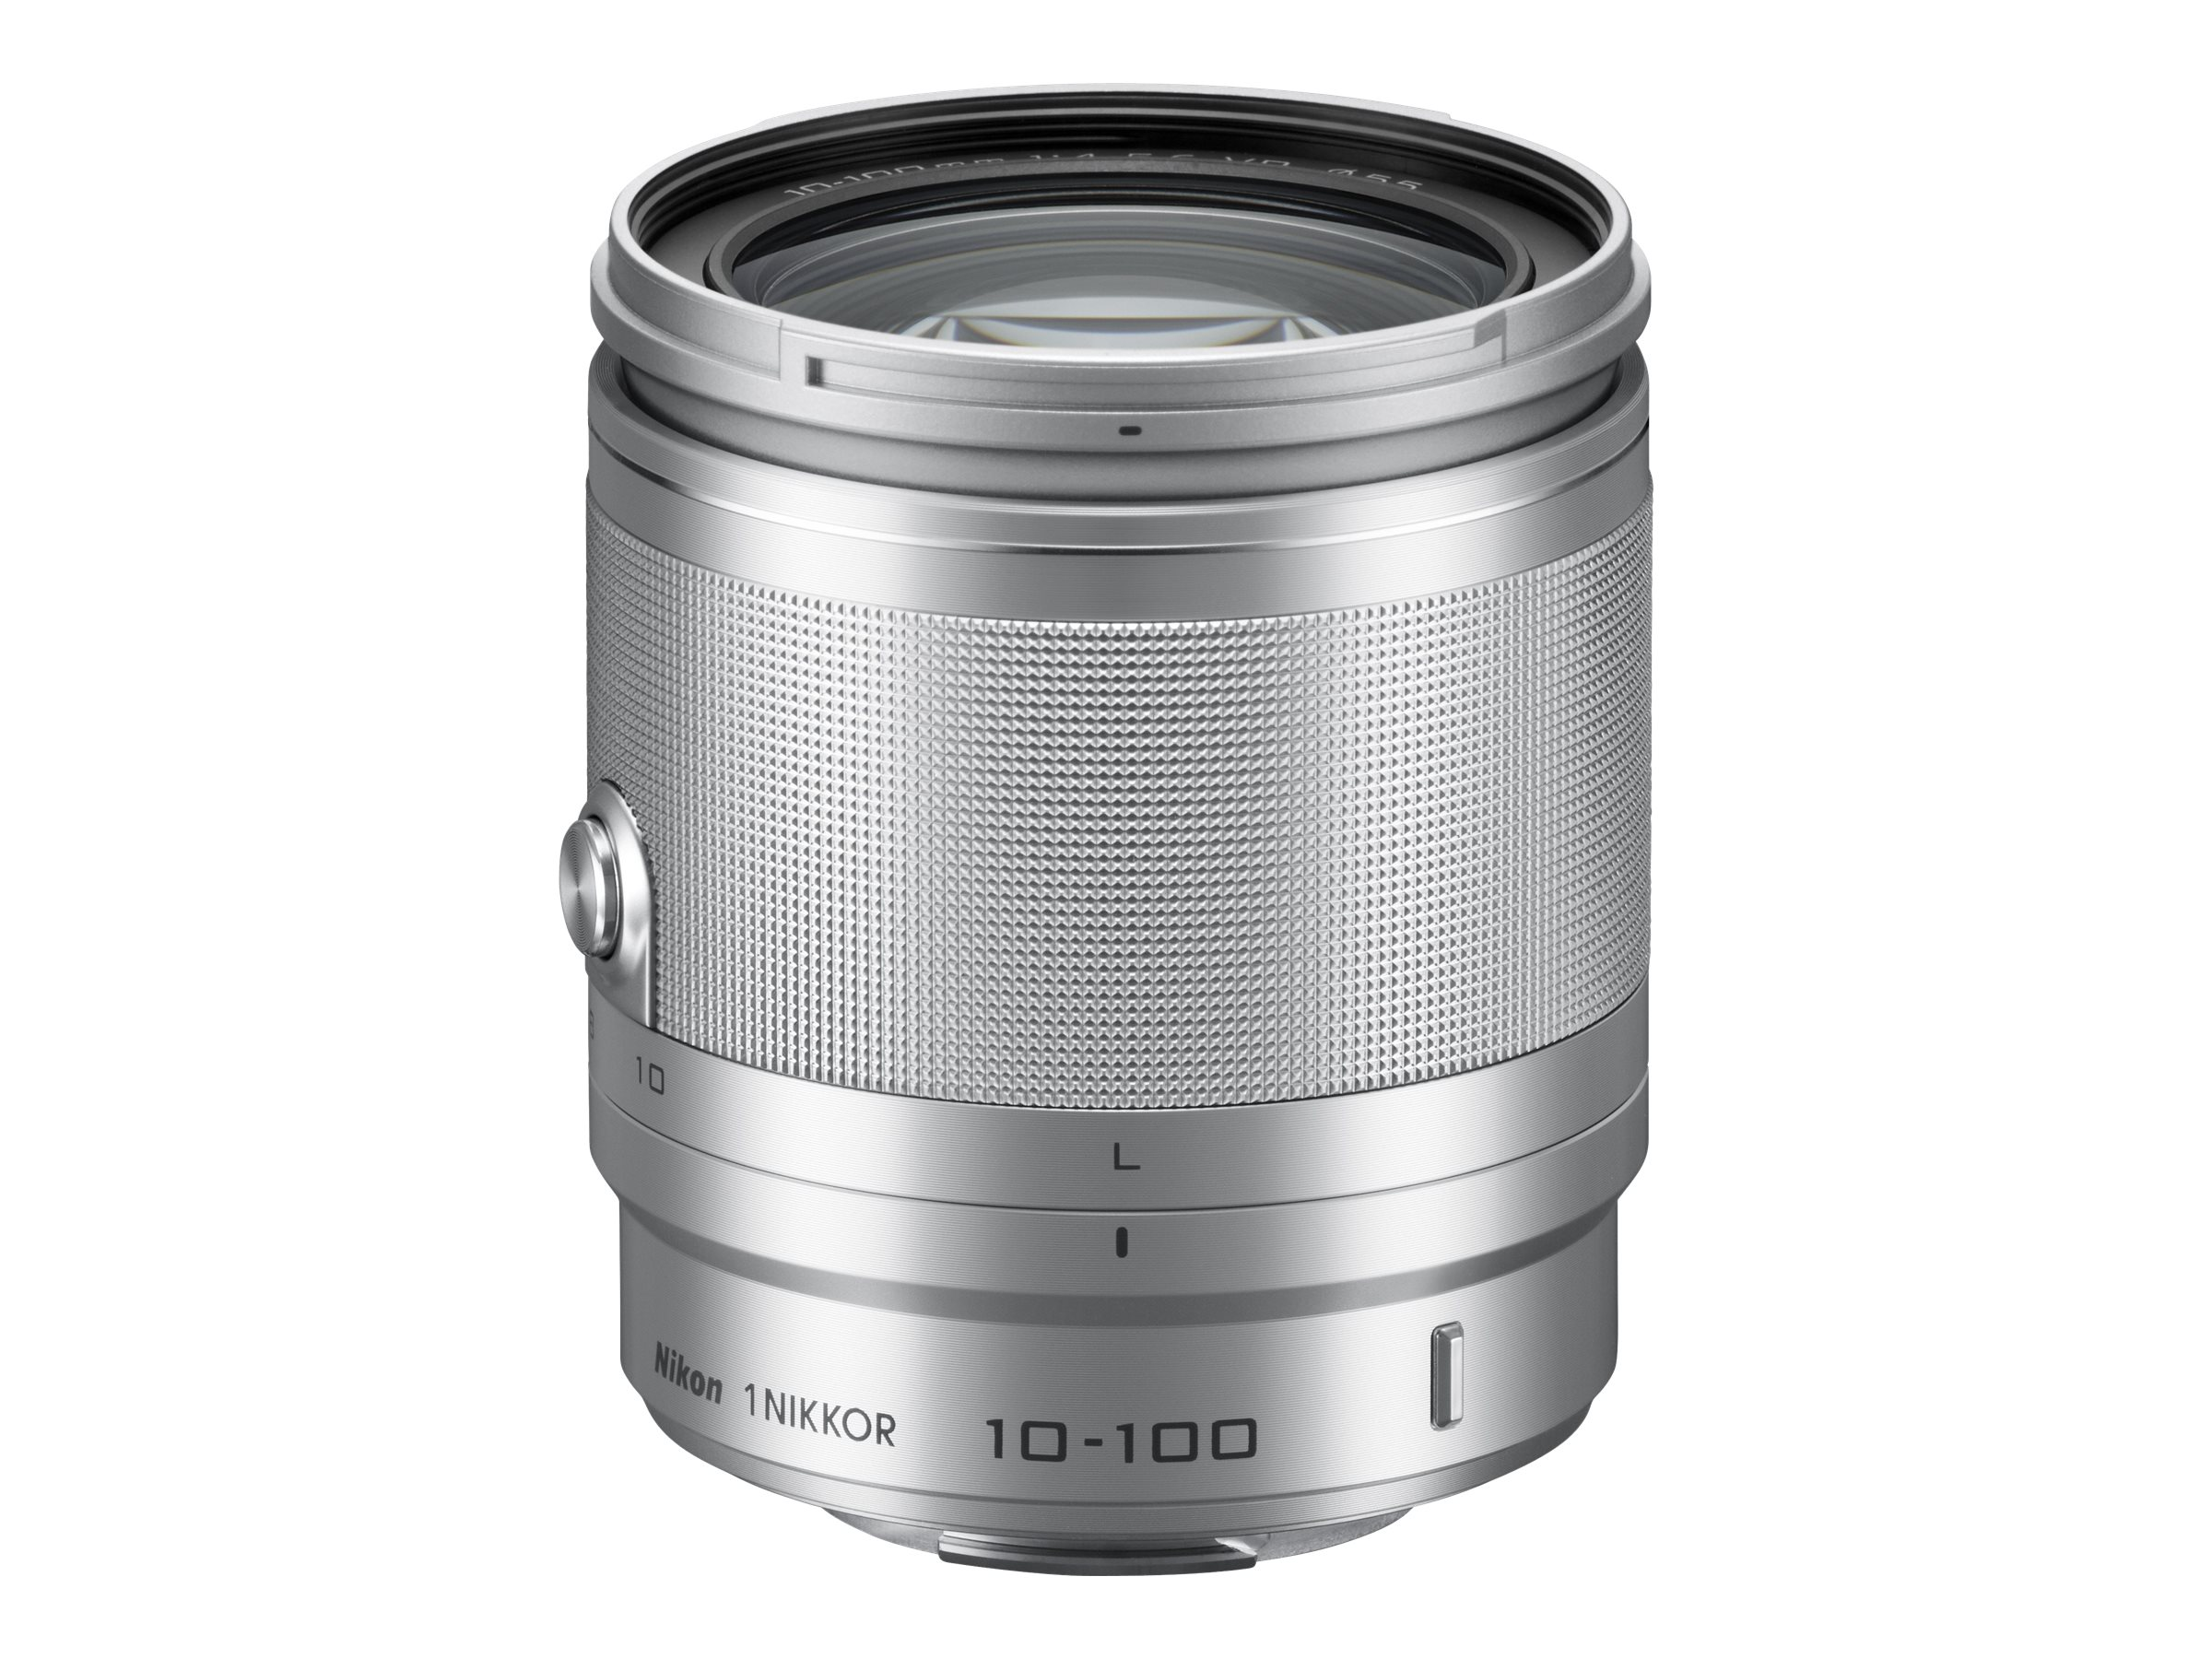 Nikon Nikkor 10-100mm f 4.0-5.6 VR Lens, Silver, 3328, 15256746, Camera & Camcorder Lenses & Filters